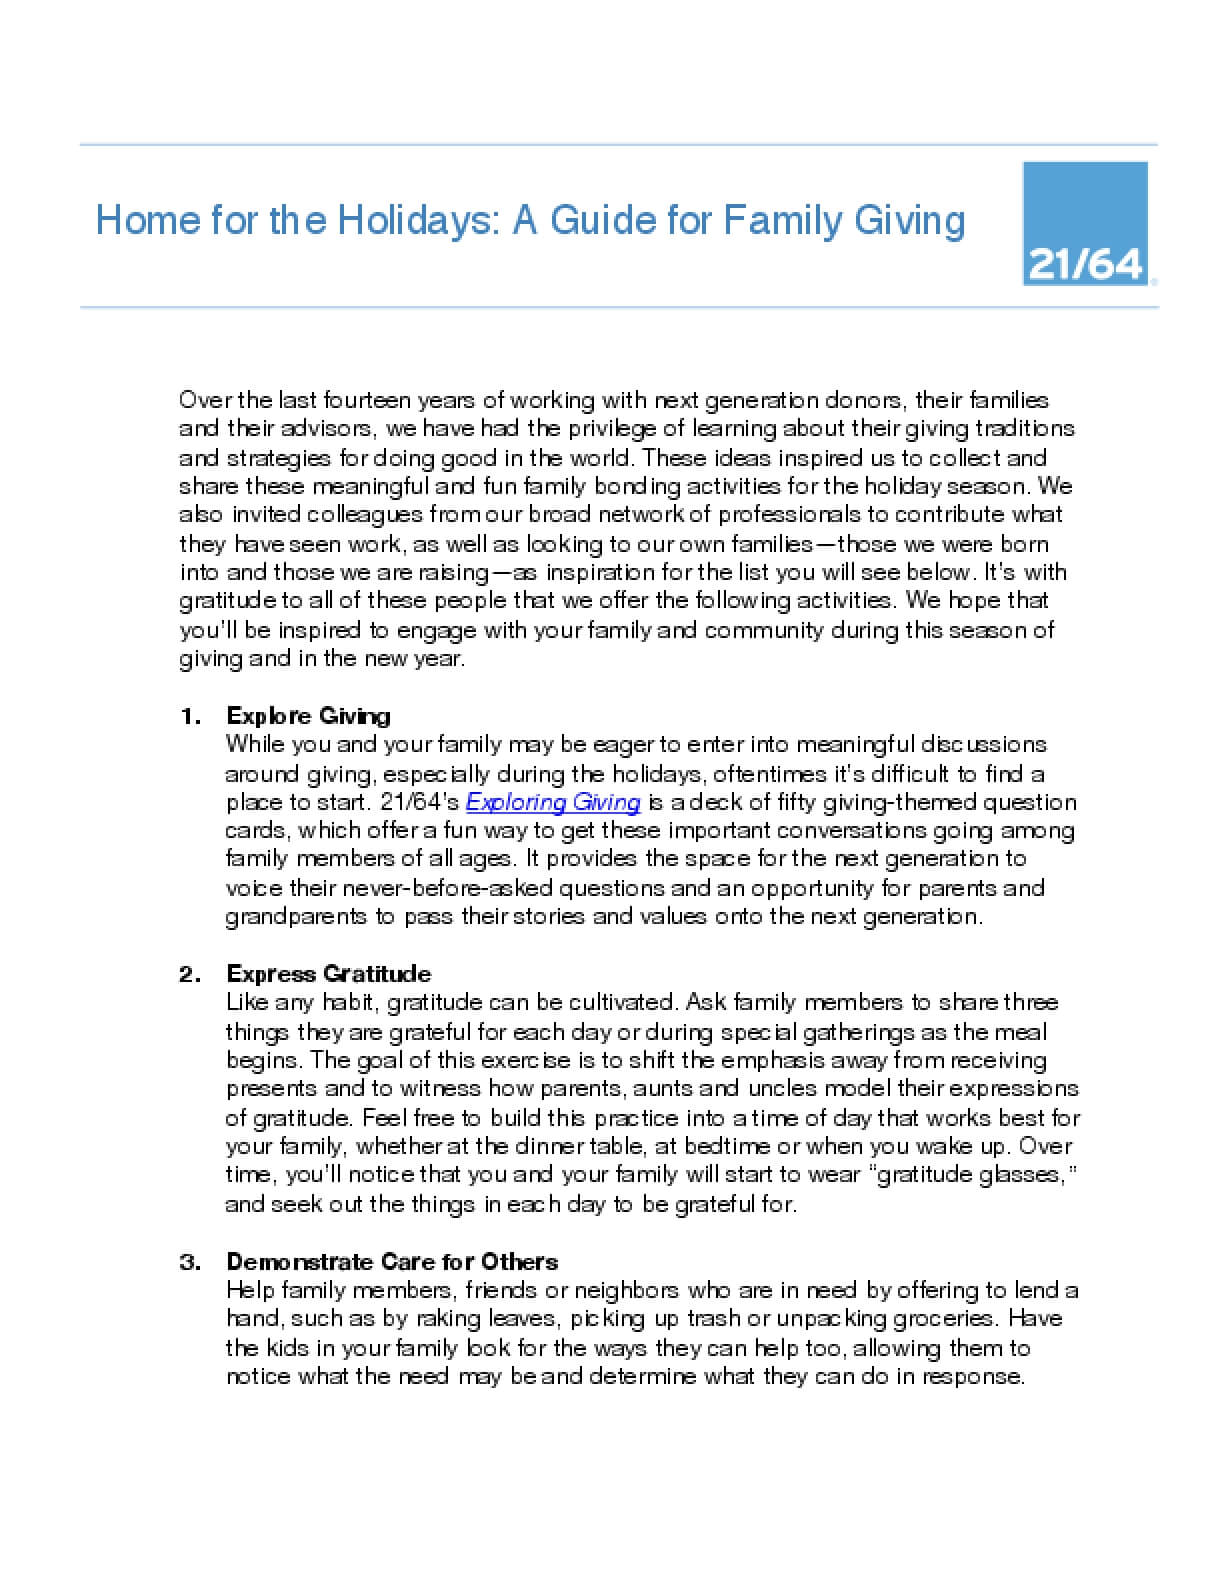 Home for the Holidays: A Guide for Family Giving